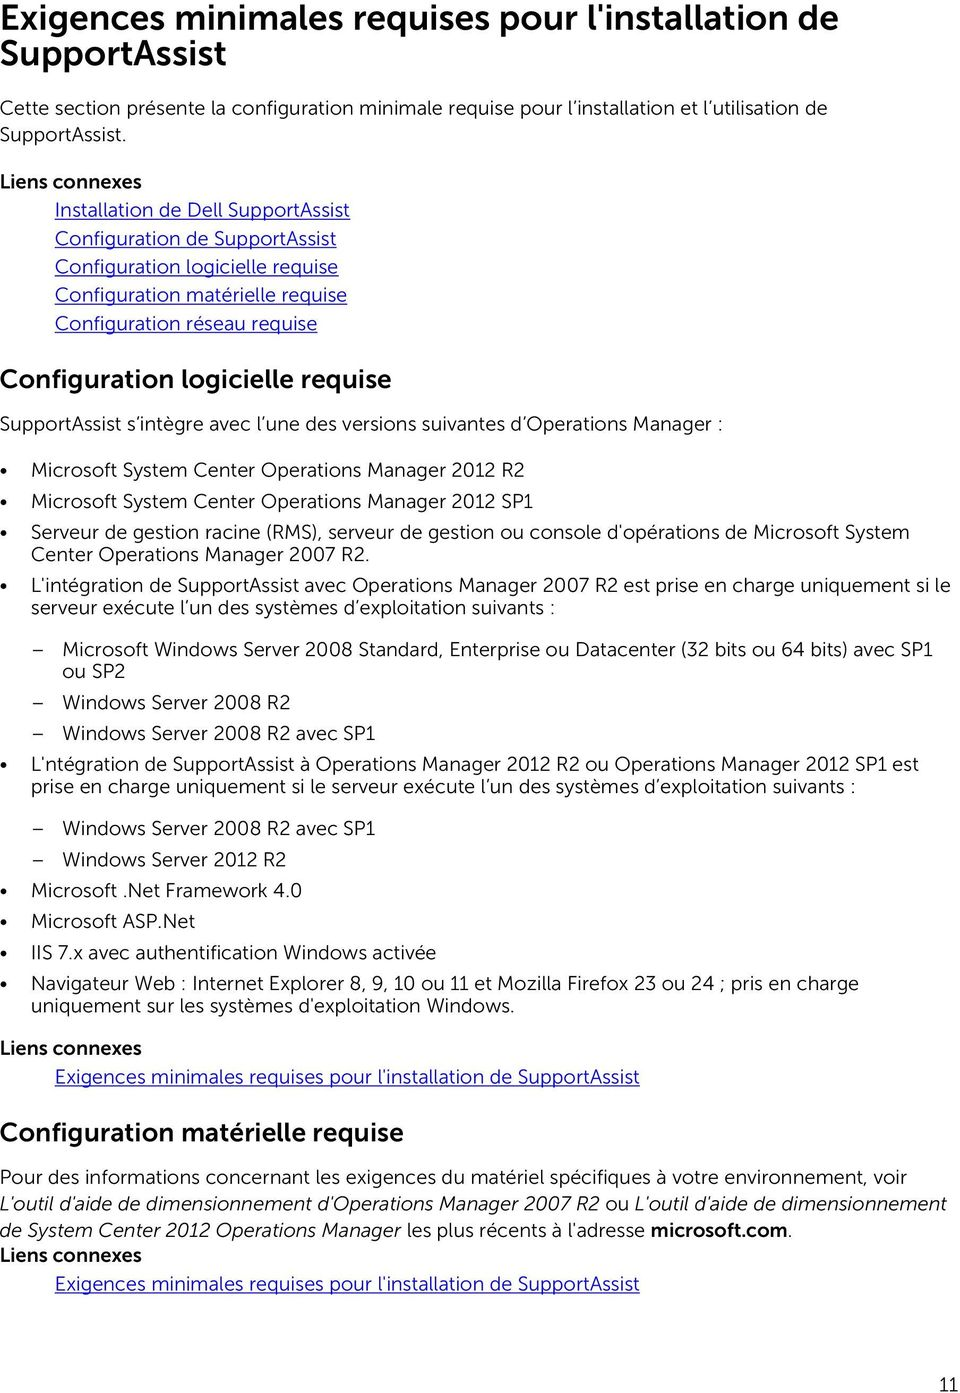 SupportAssist s intègre avec l une des versions suivantes d Operations Manager : Microsoft System Center Operations Manager 2012 R2 Microsoft System Center Operations Manager 2012 SP1 Serveur de